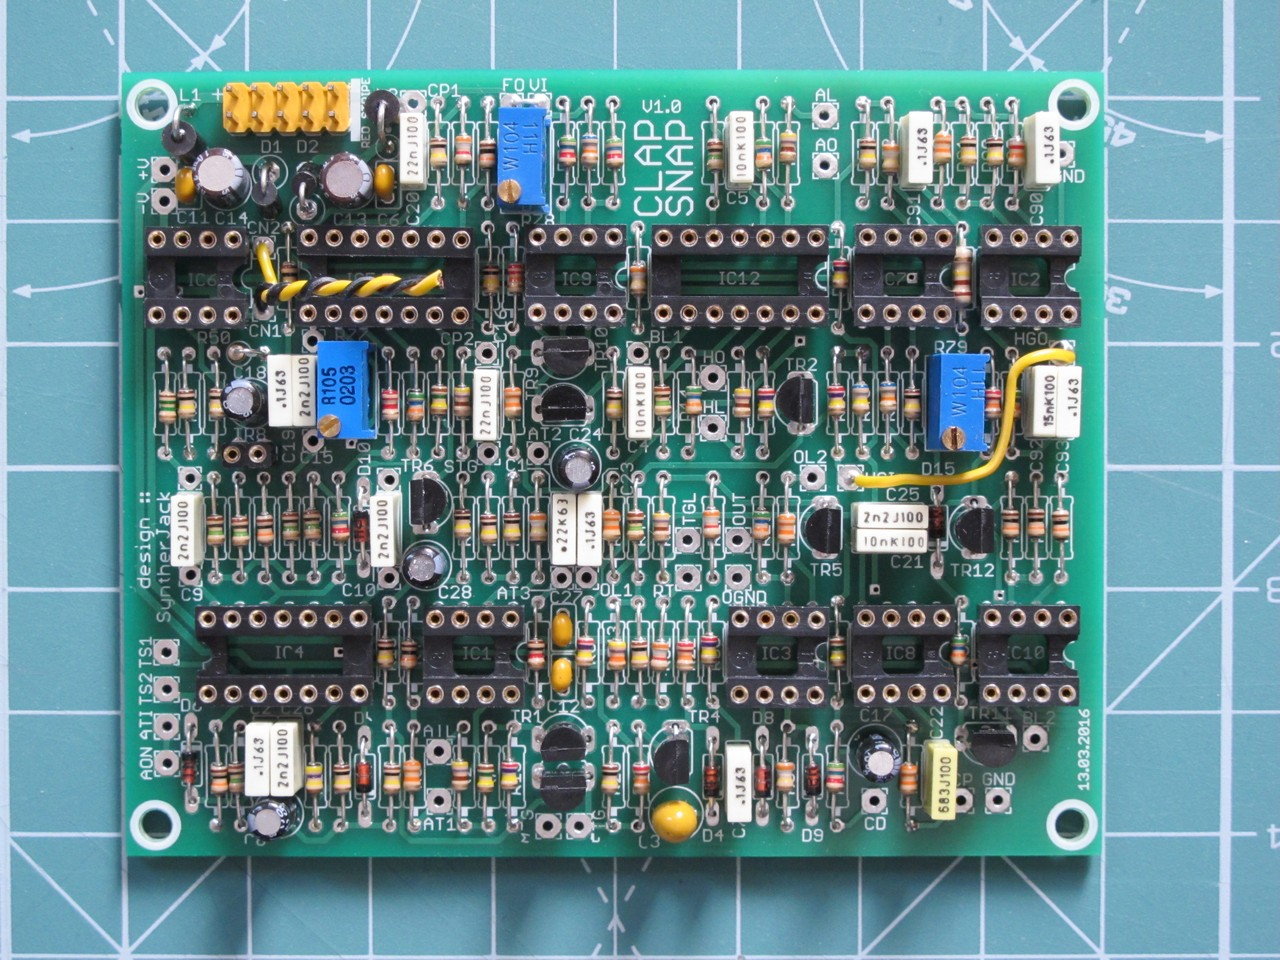 ClapSnap PCB soldered